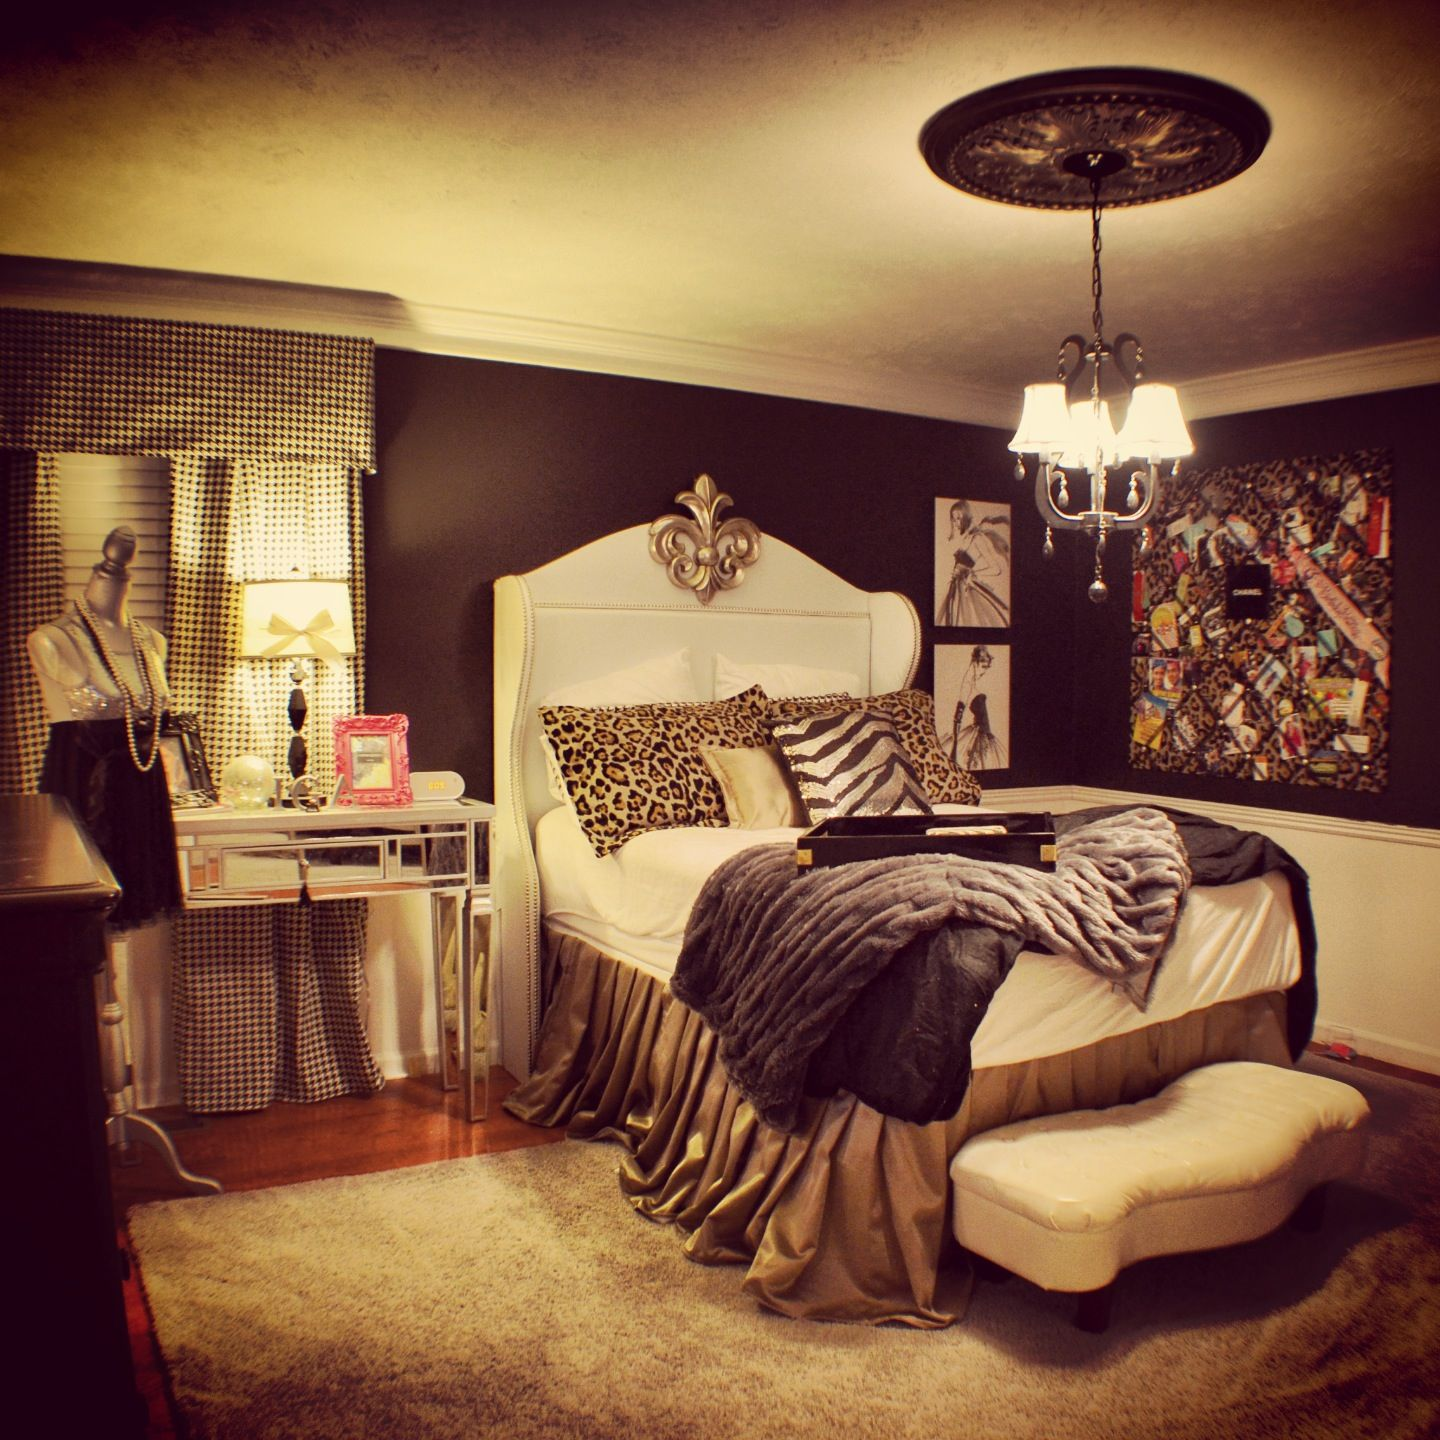 ireland s chanel themed bedroom with houndstooth curtains 17906 | 7c584eff6db5db5cea6b1a864bd0f9bf